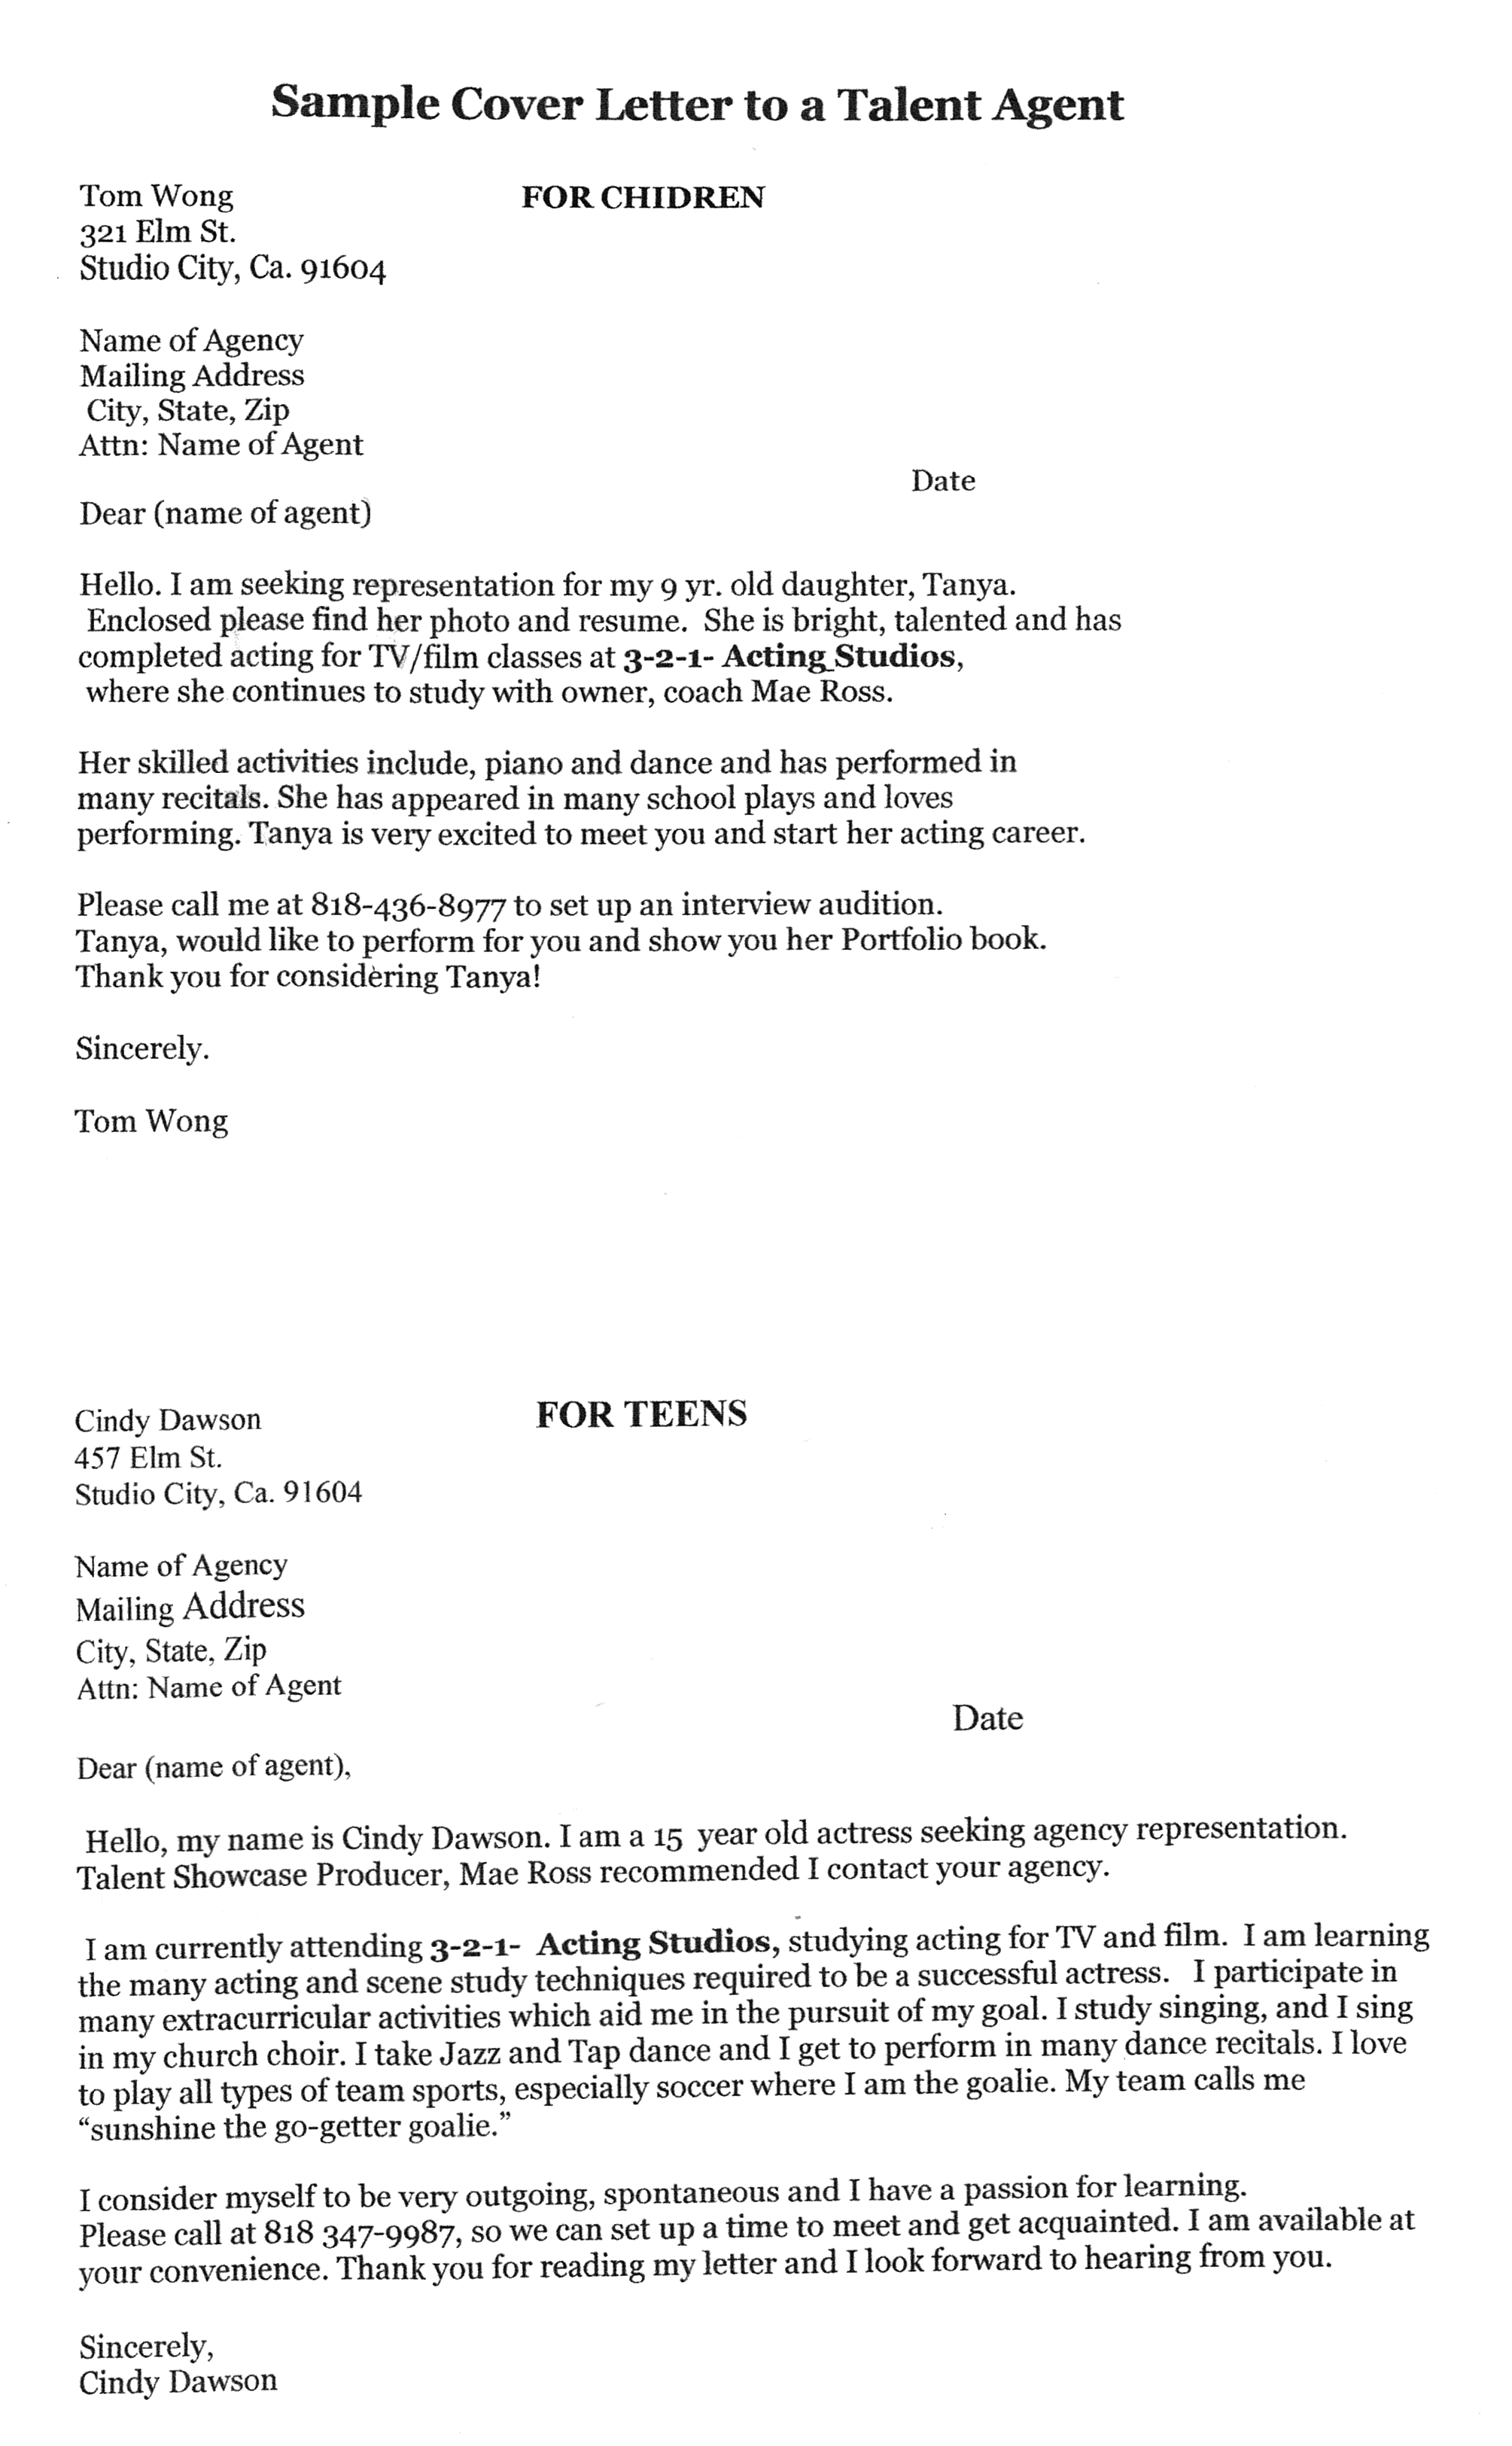 Good Sample Cover Letters To Talent Agents  How Does A Cover Letter Look